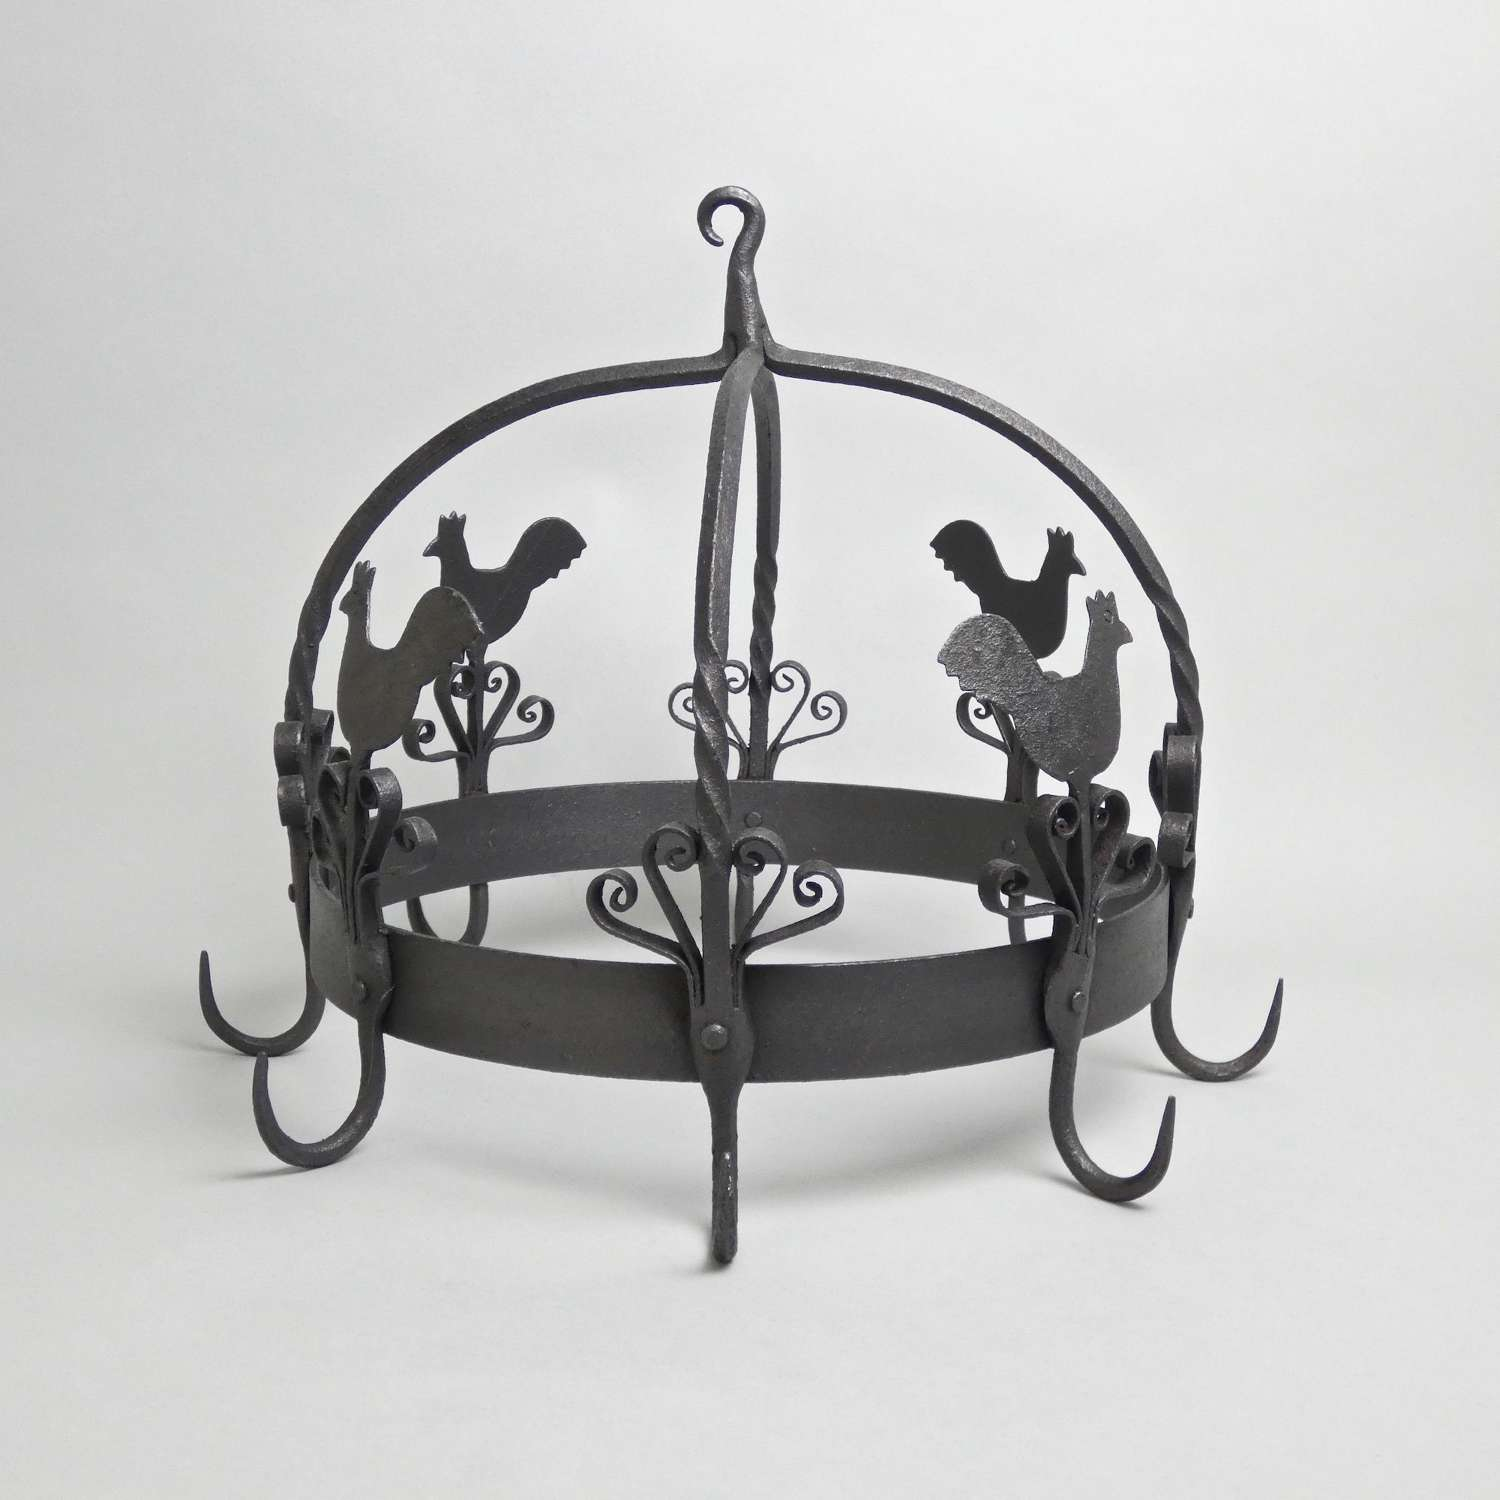 19th century, steel game hanger